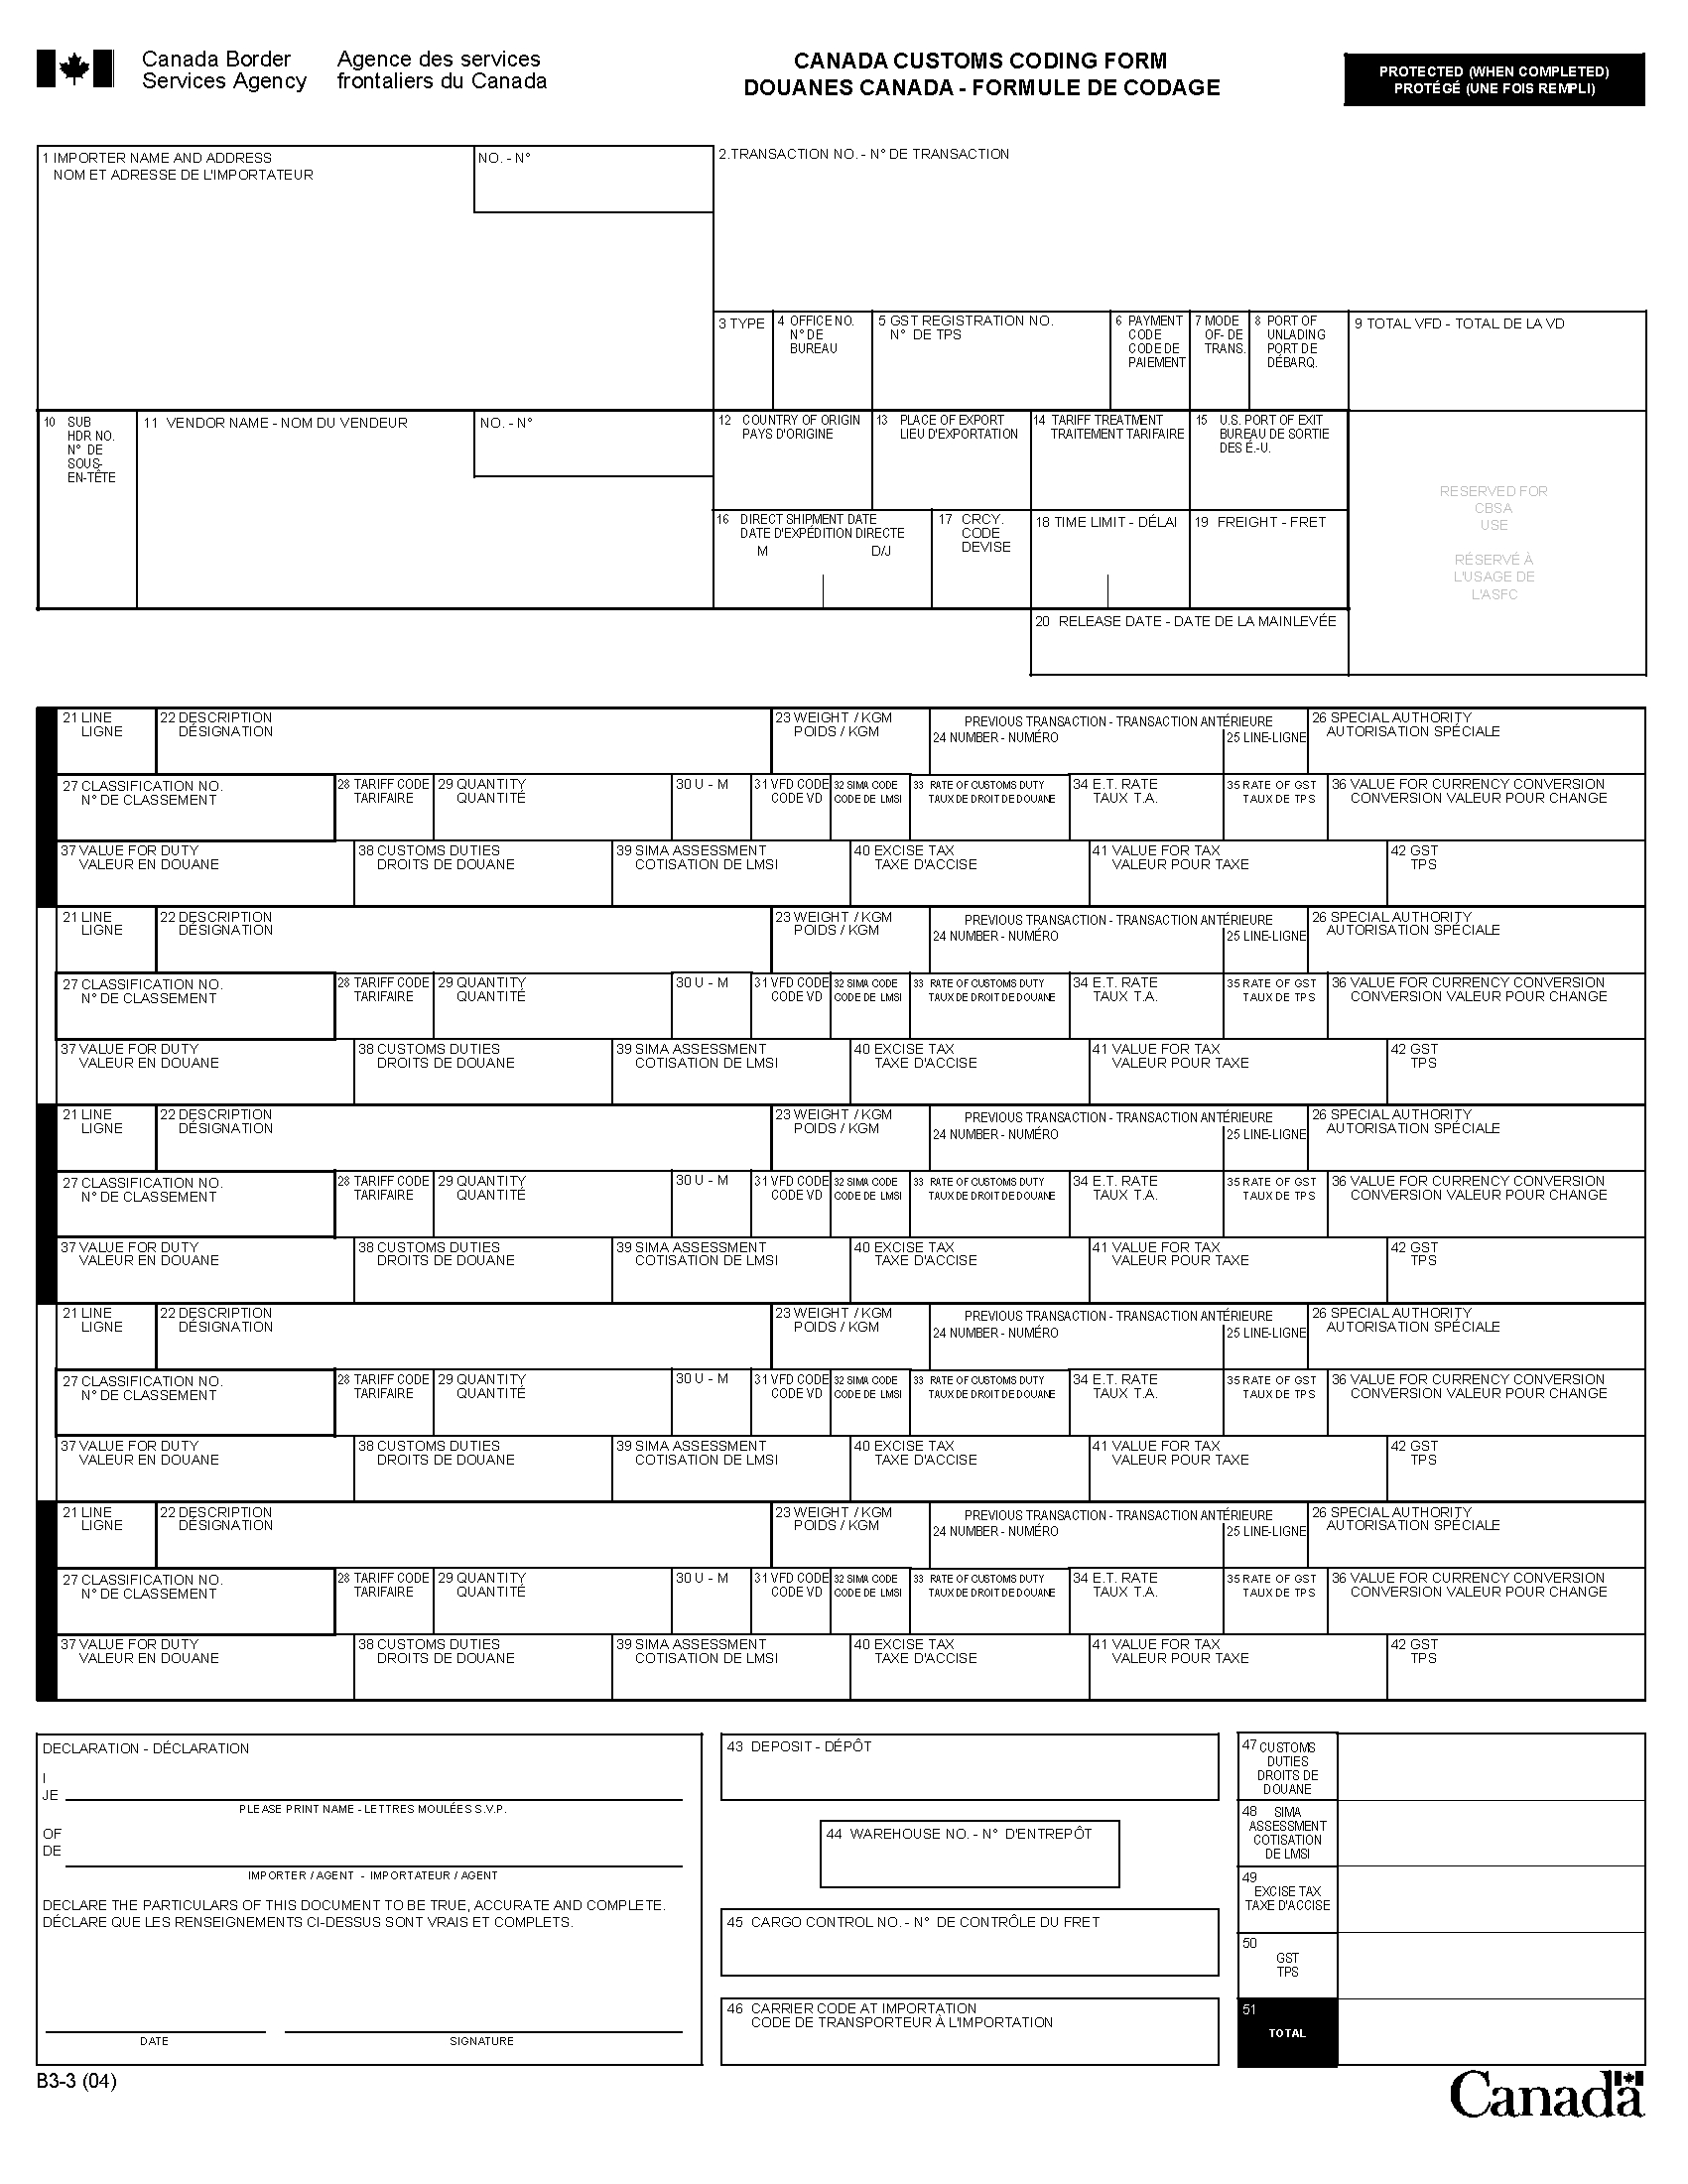 canadian customs invoice instructions memorandum d17 1 5 registration accounting and payment for 1701 X 2201